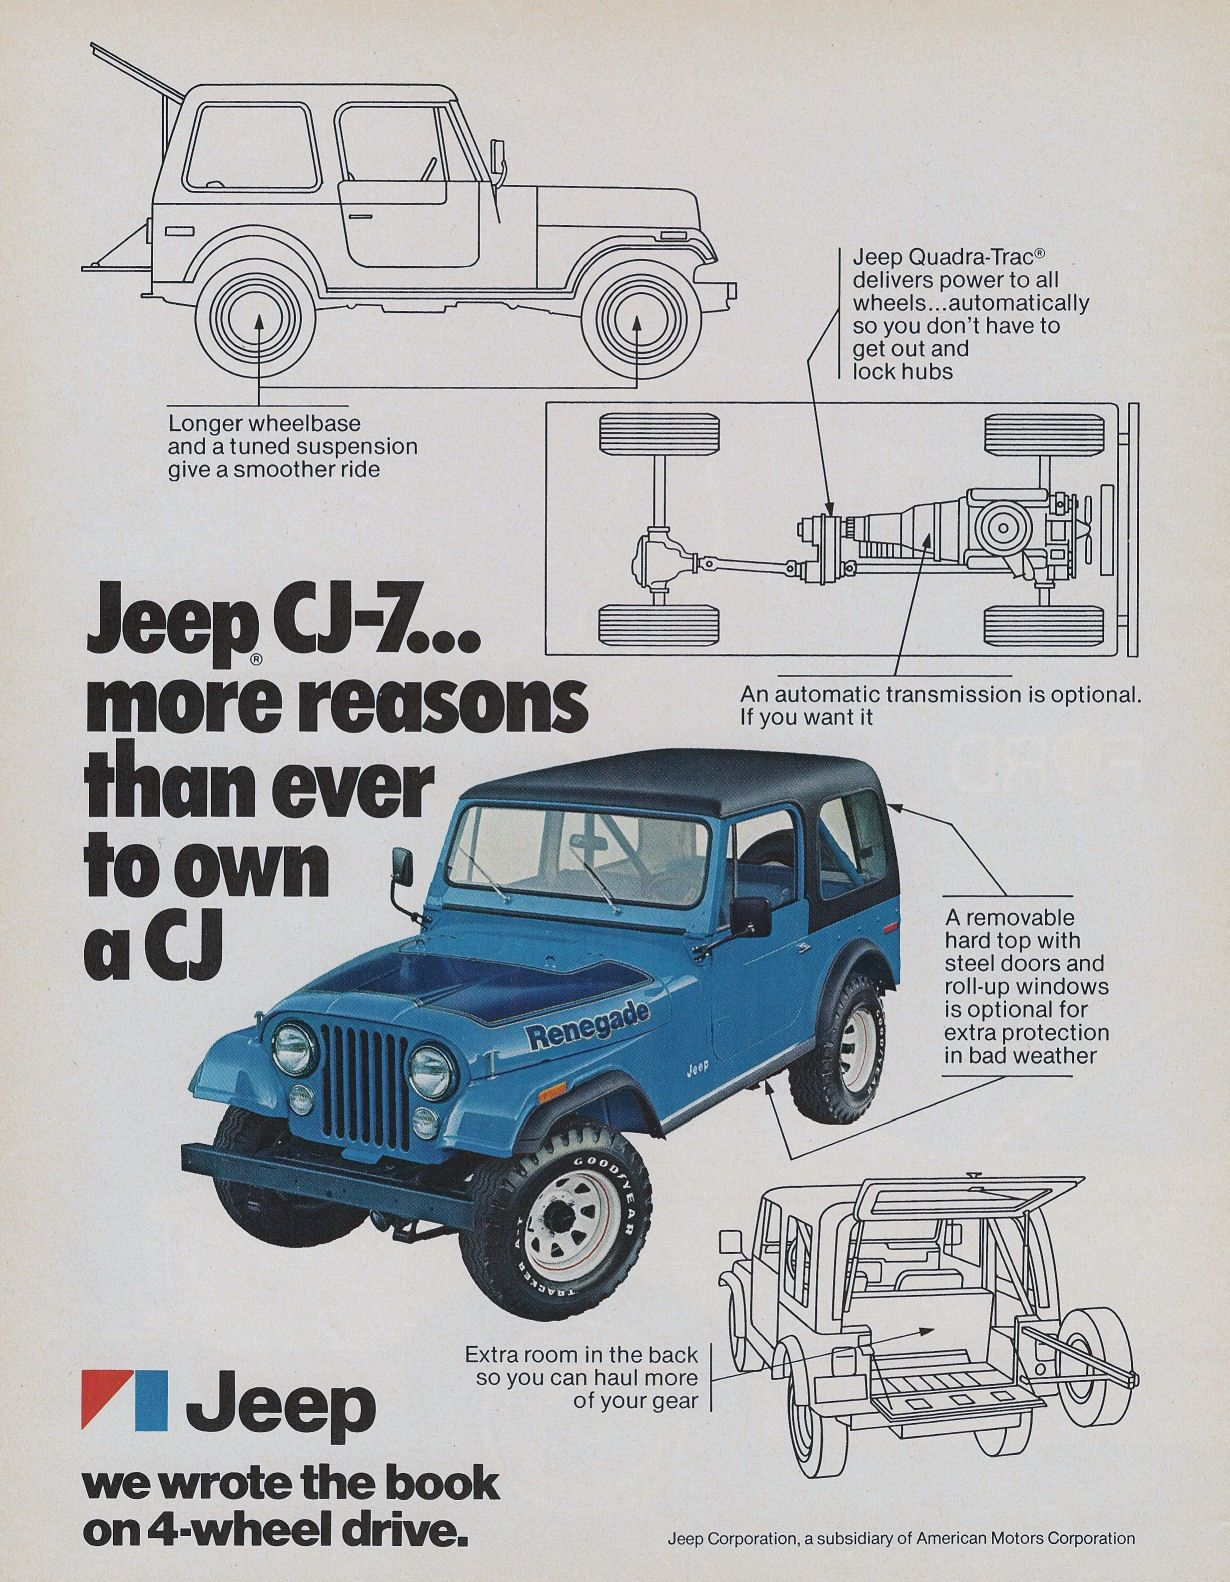 1977 more reasons to own a jeep cj 7 jeep ads 1970s rh pinterest com 1975 Jeep Wagoneer 1968 Jeep Wagoneer